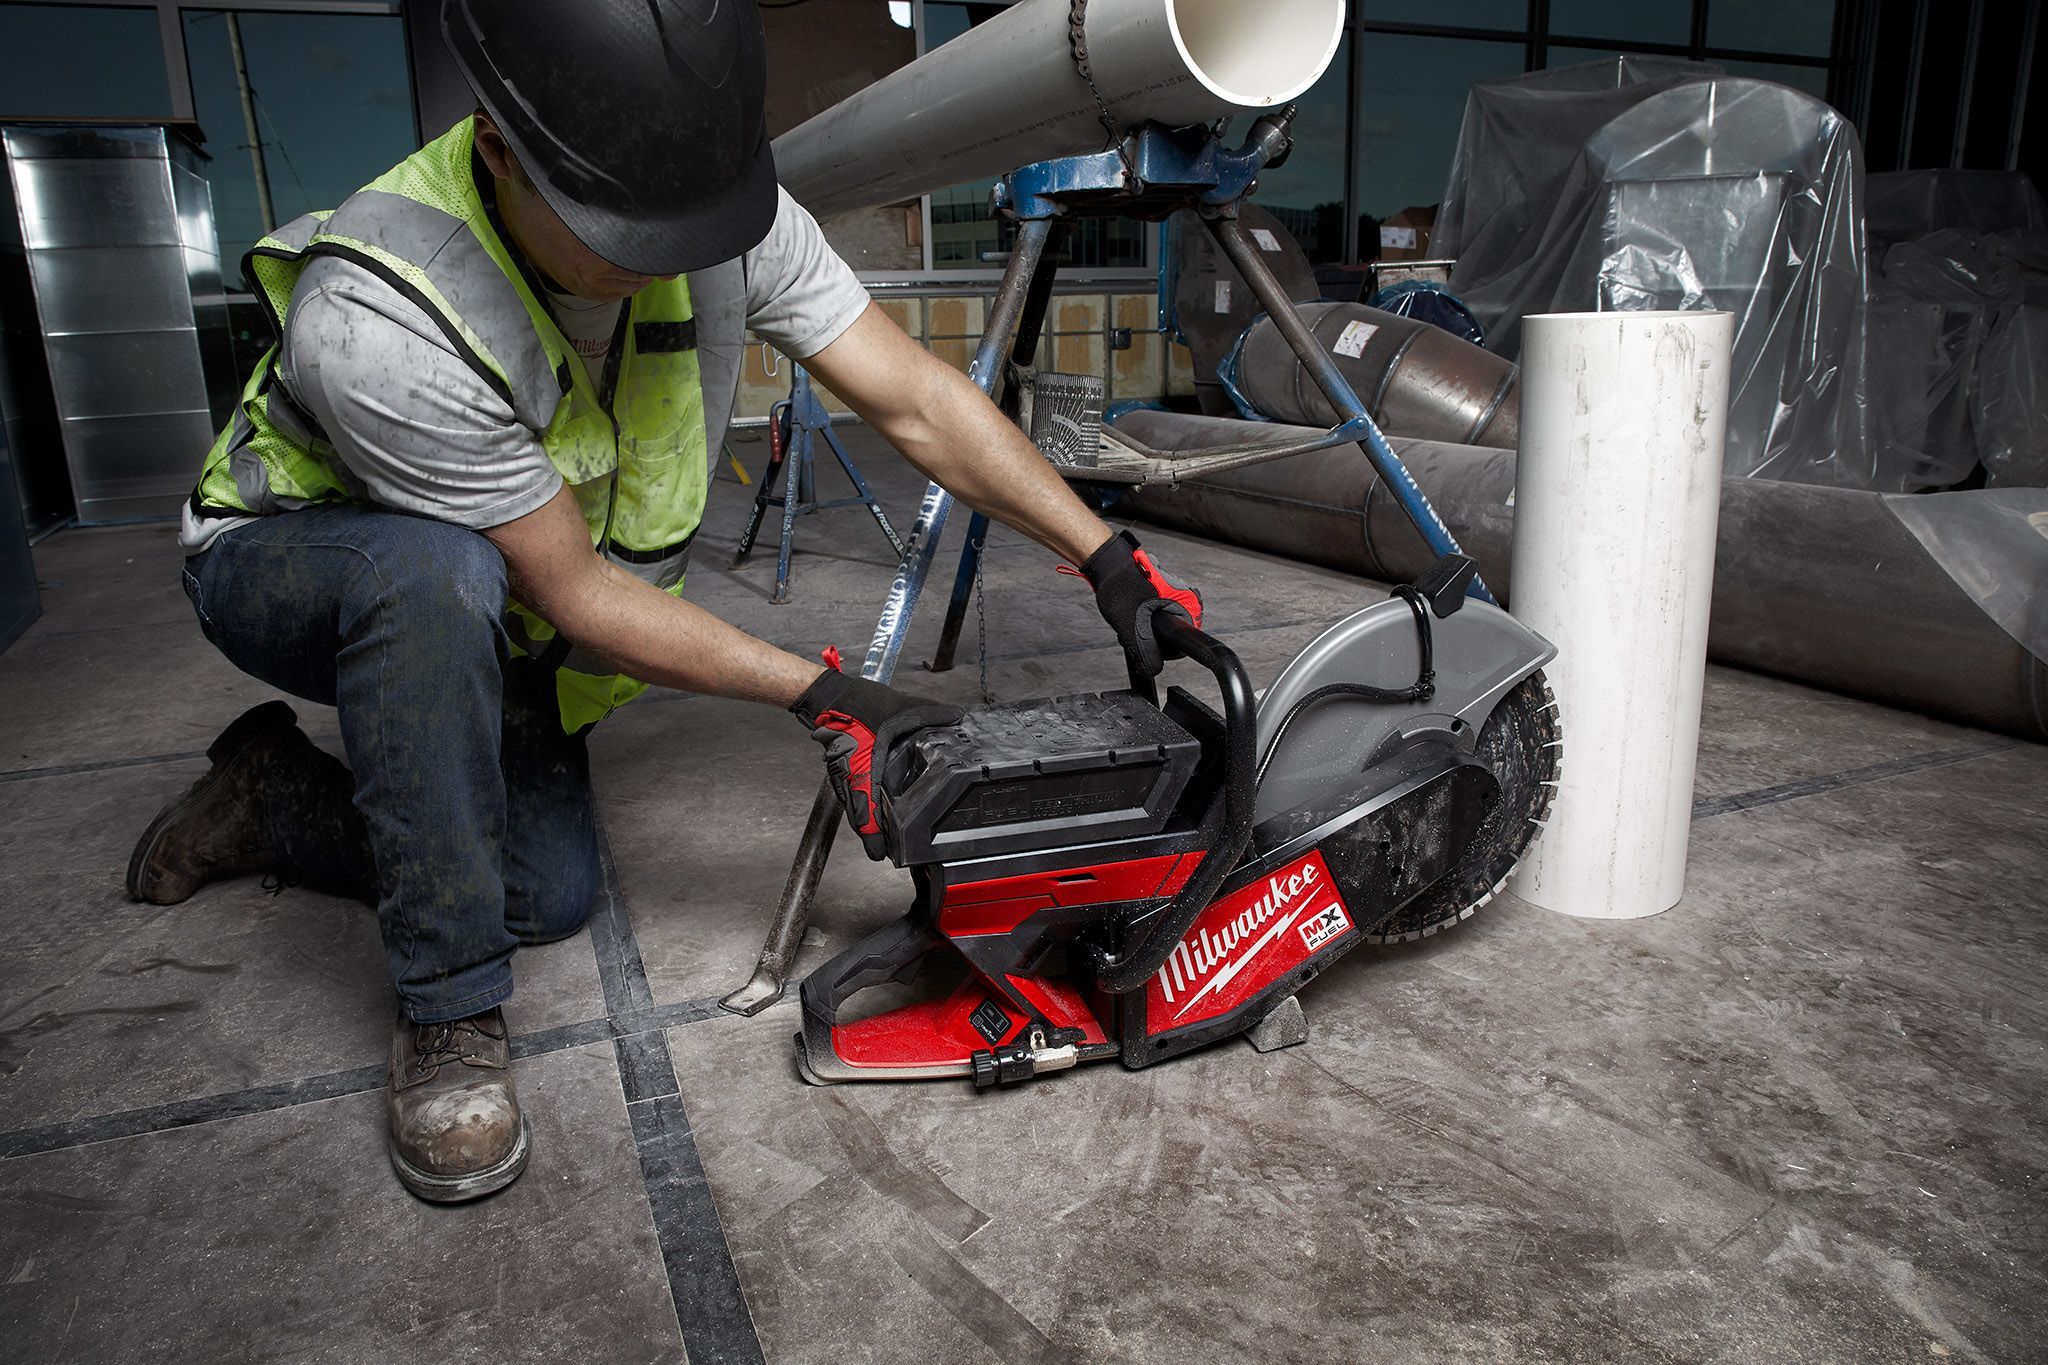 A concrete finisher uses MX FUEL Cut Off Saw to cut out section in floor